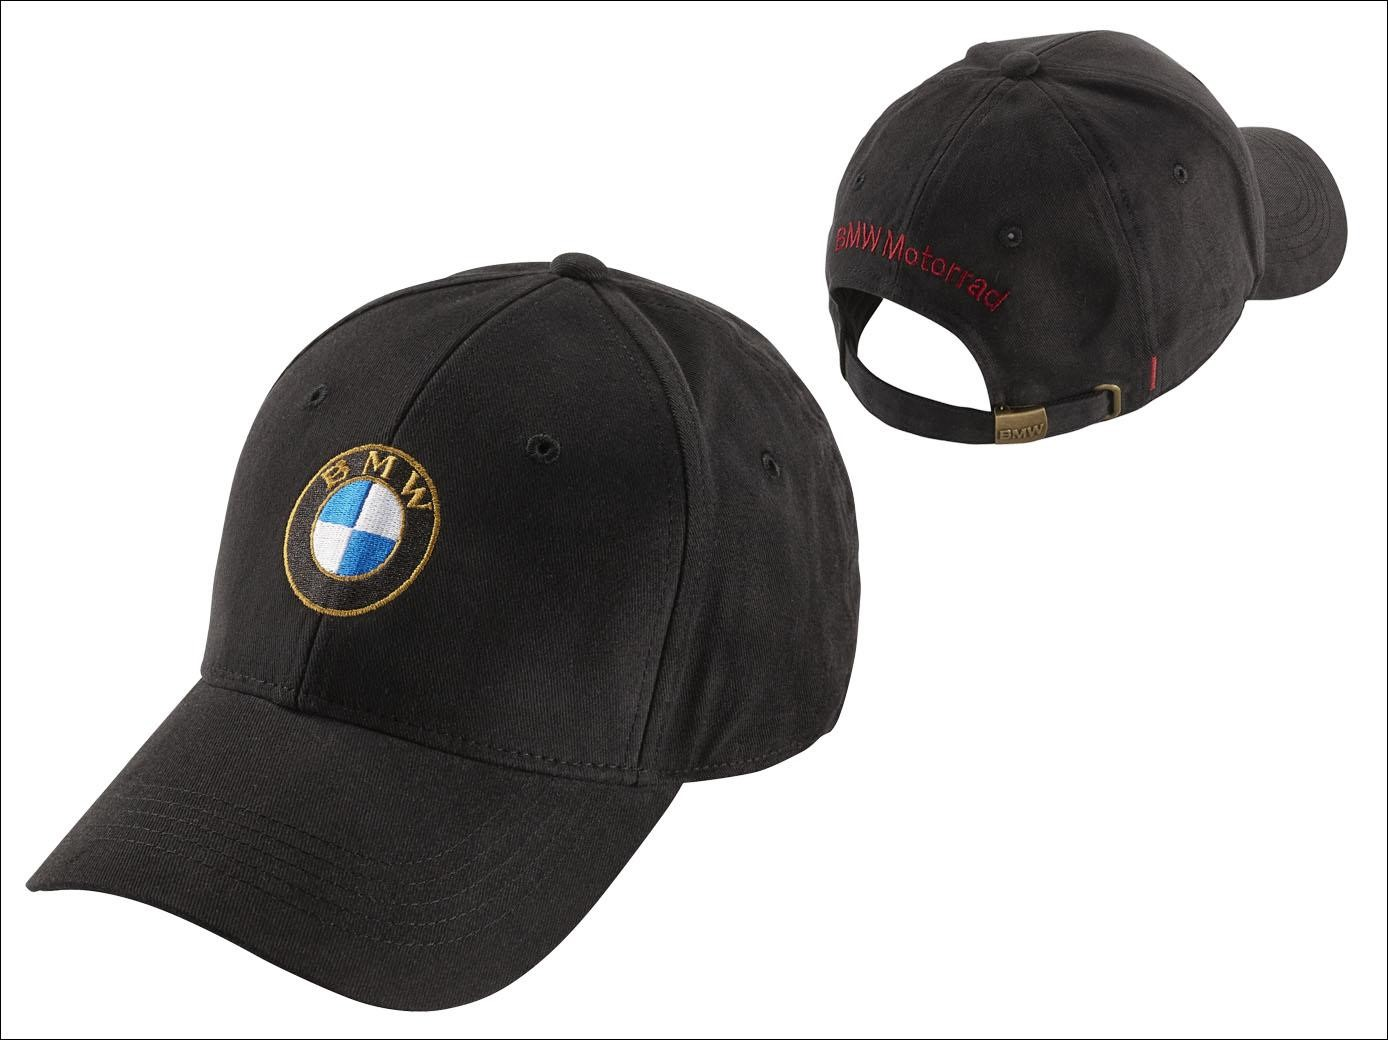 BMW Hat / Cap Black with Logo - 76898352726